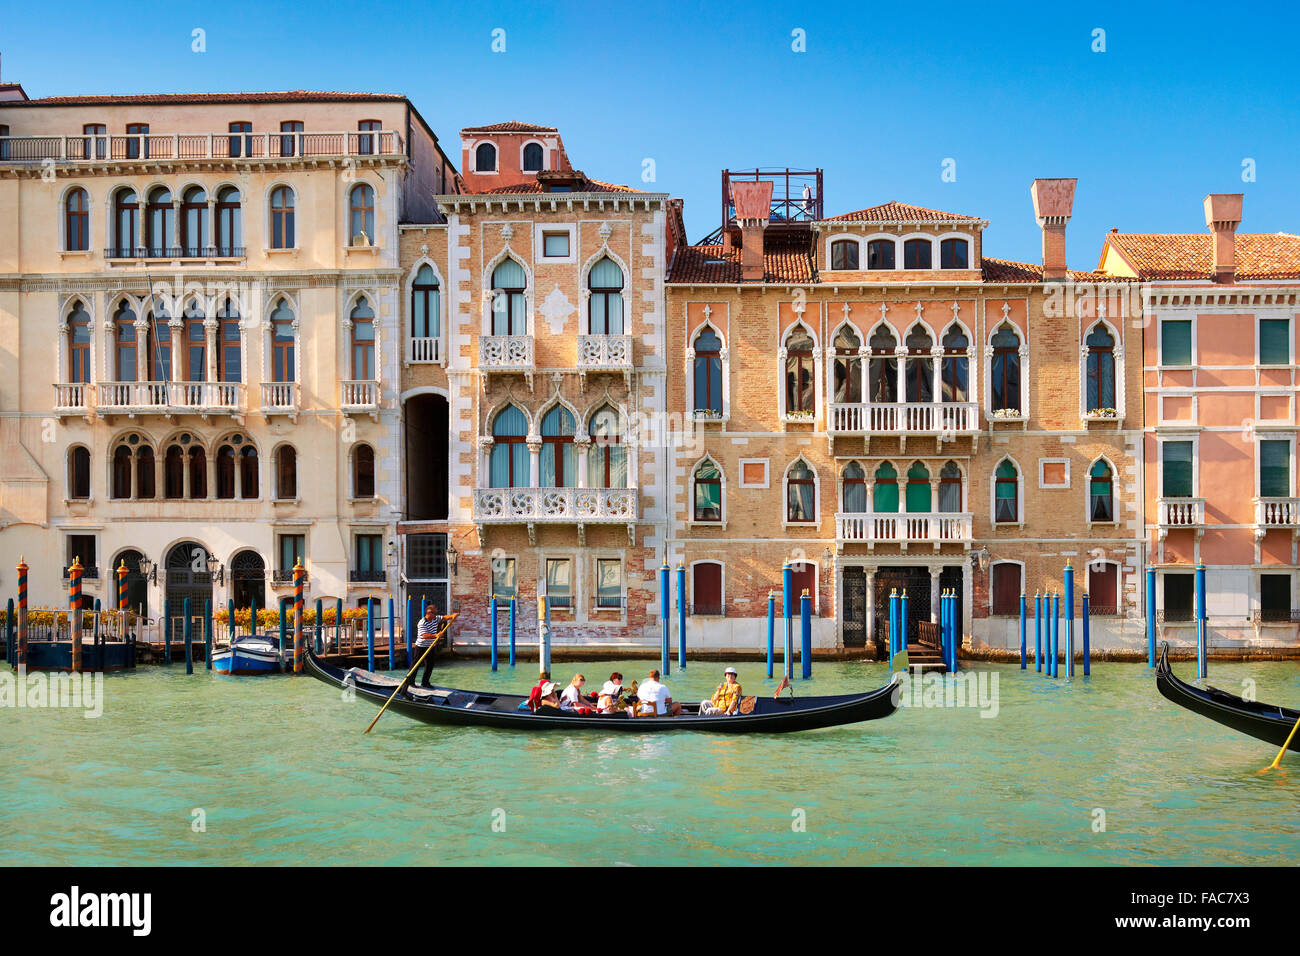 Venice, Italy - tourists in gondola on Grand Canal - Stock Image